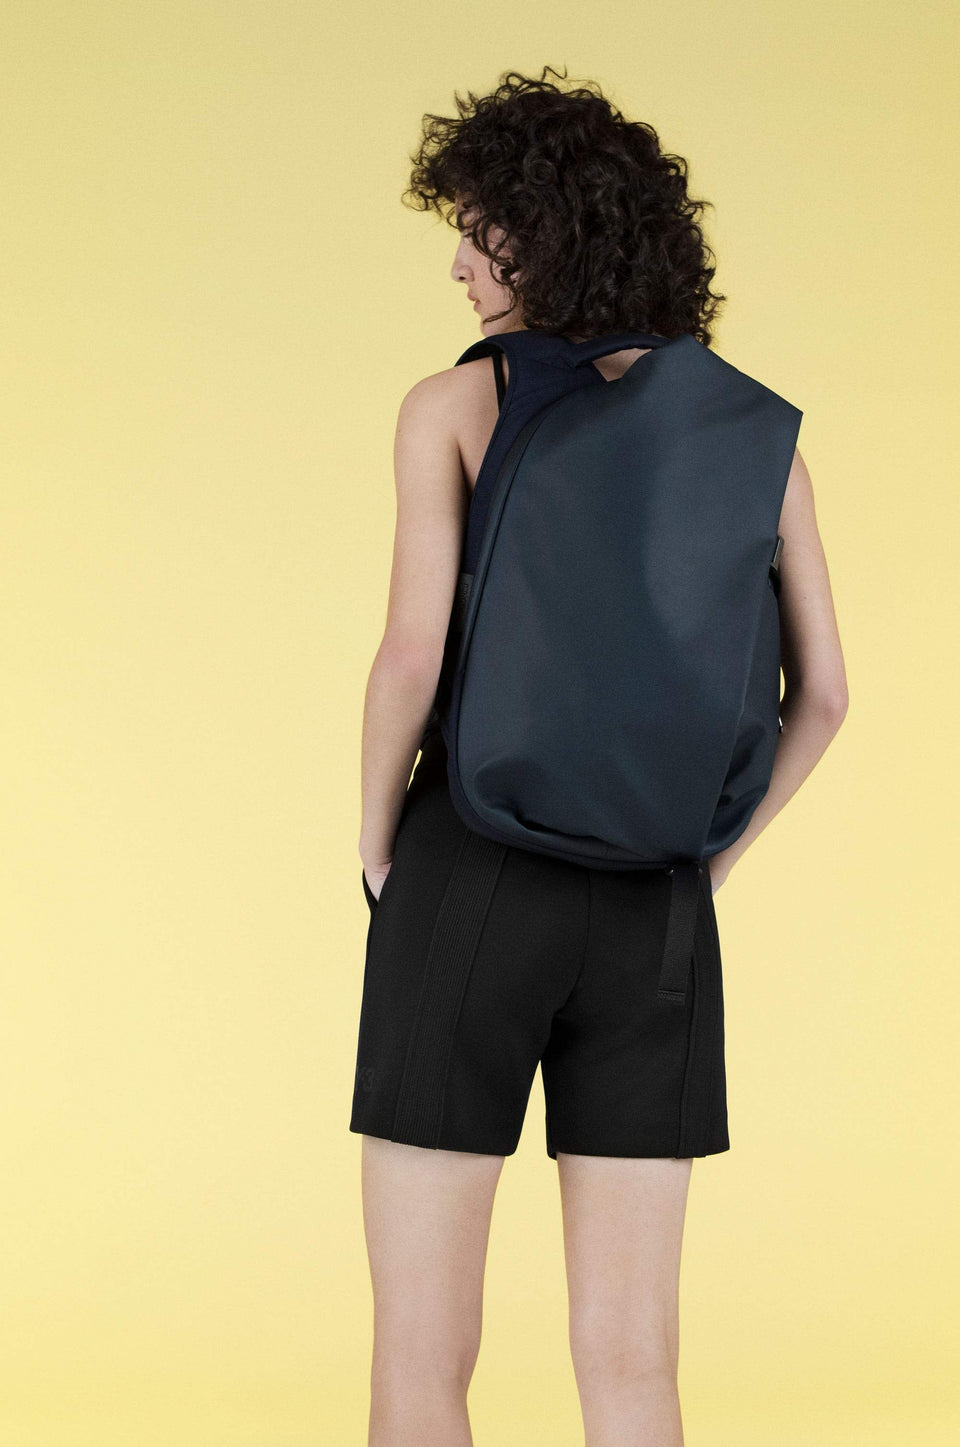 Isar Small Obsidian Blue Backpack Backpack côte&ciel - der ZEITGEIST